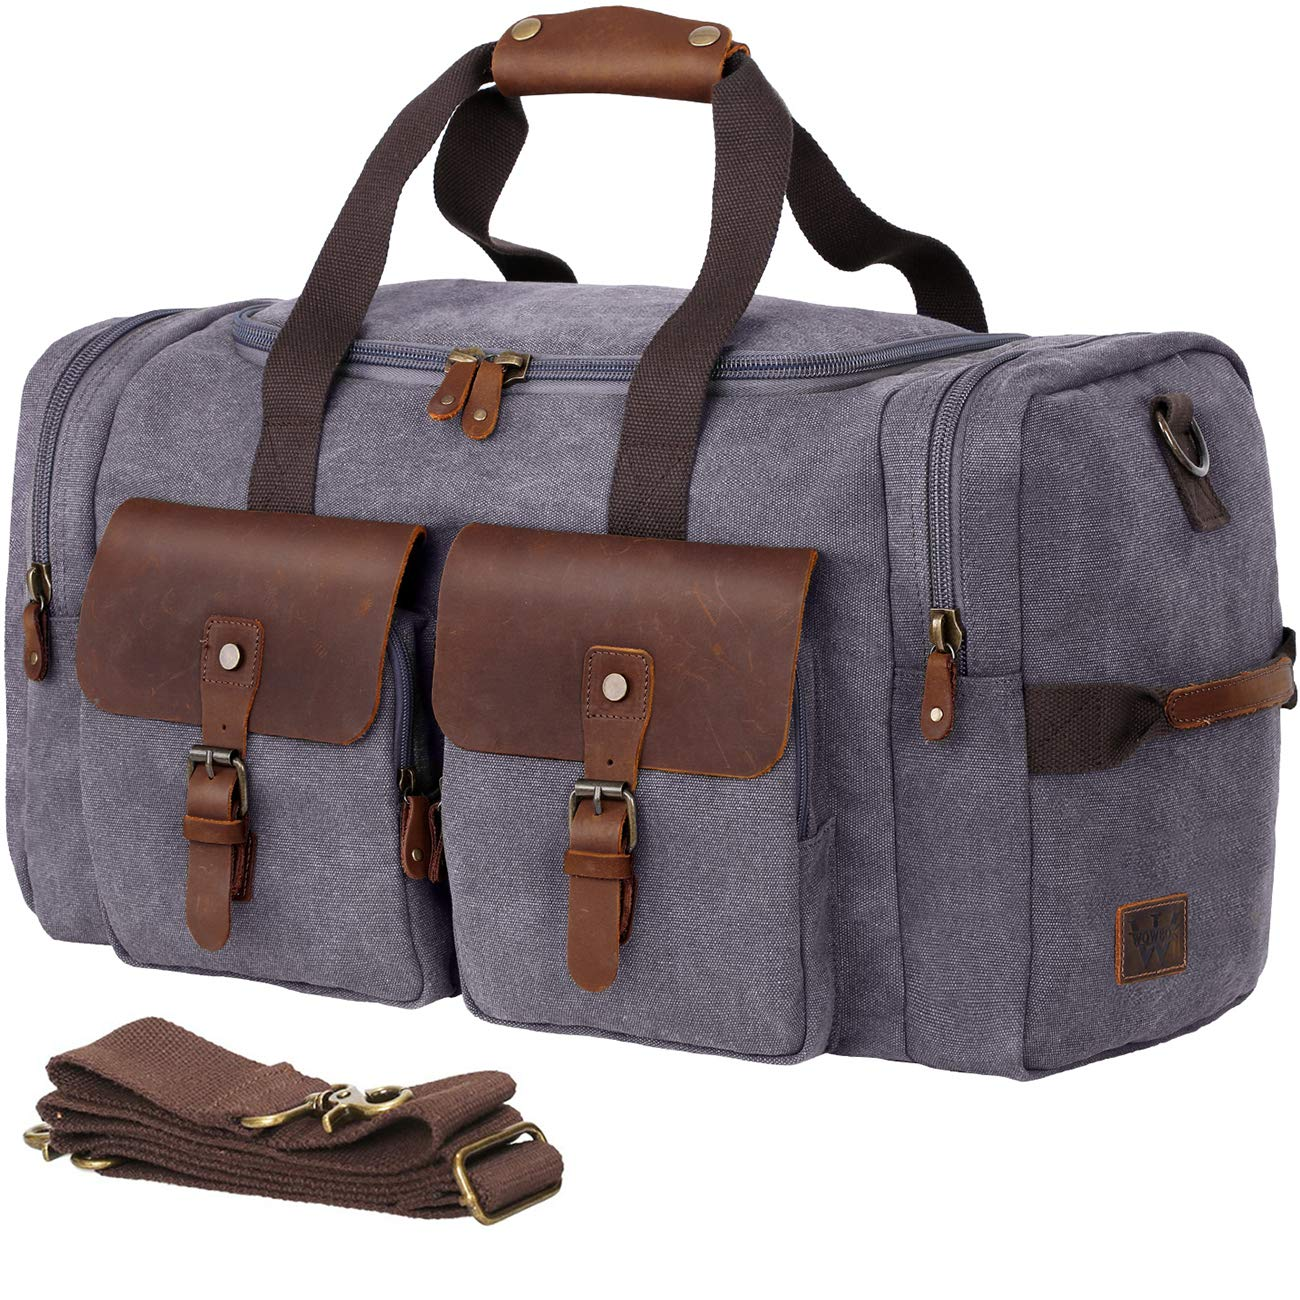 Wowbox Large Duffel Bags For Women